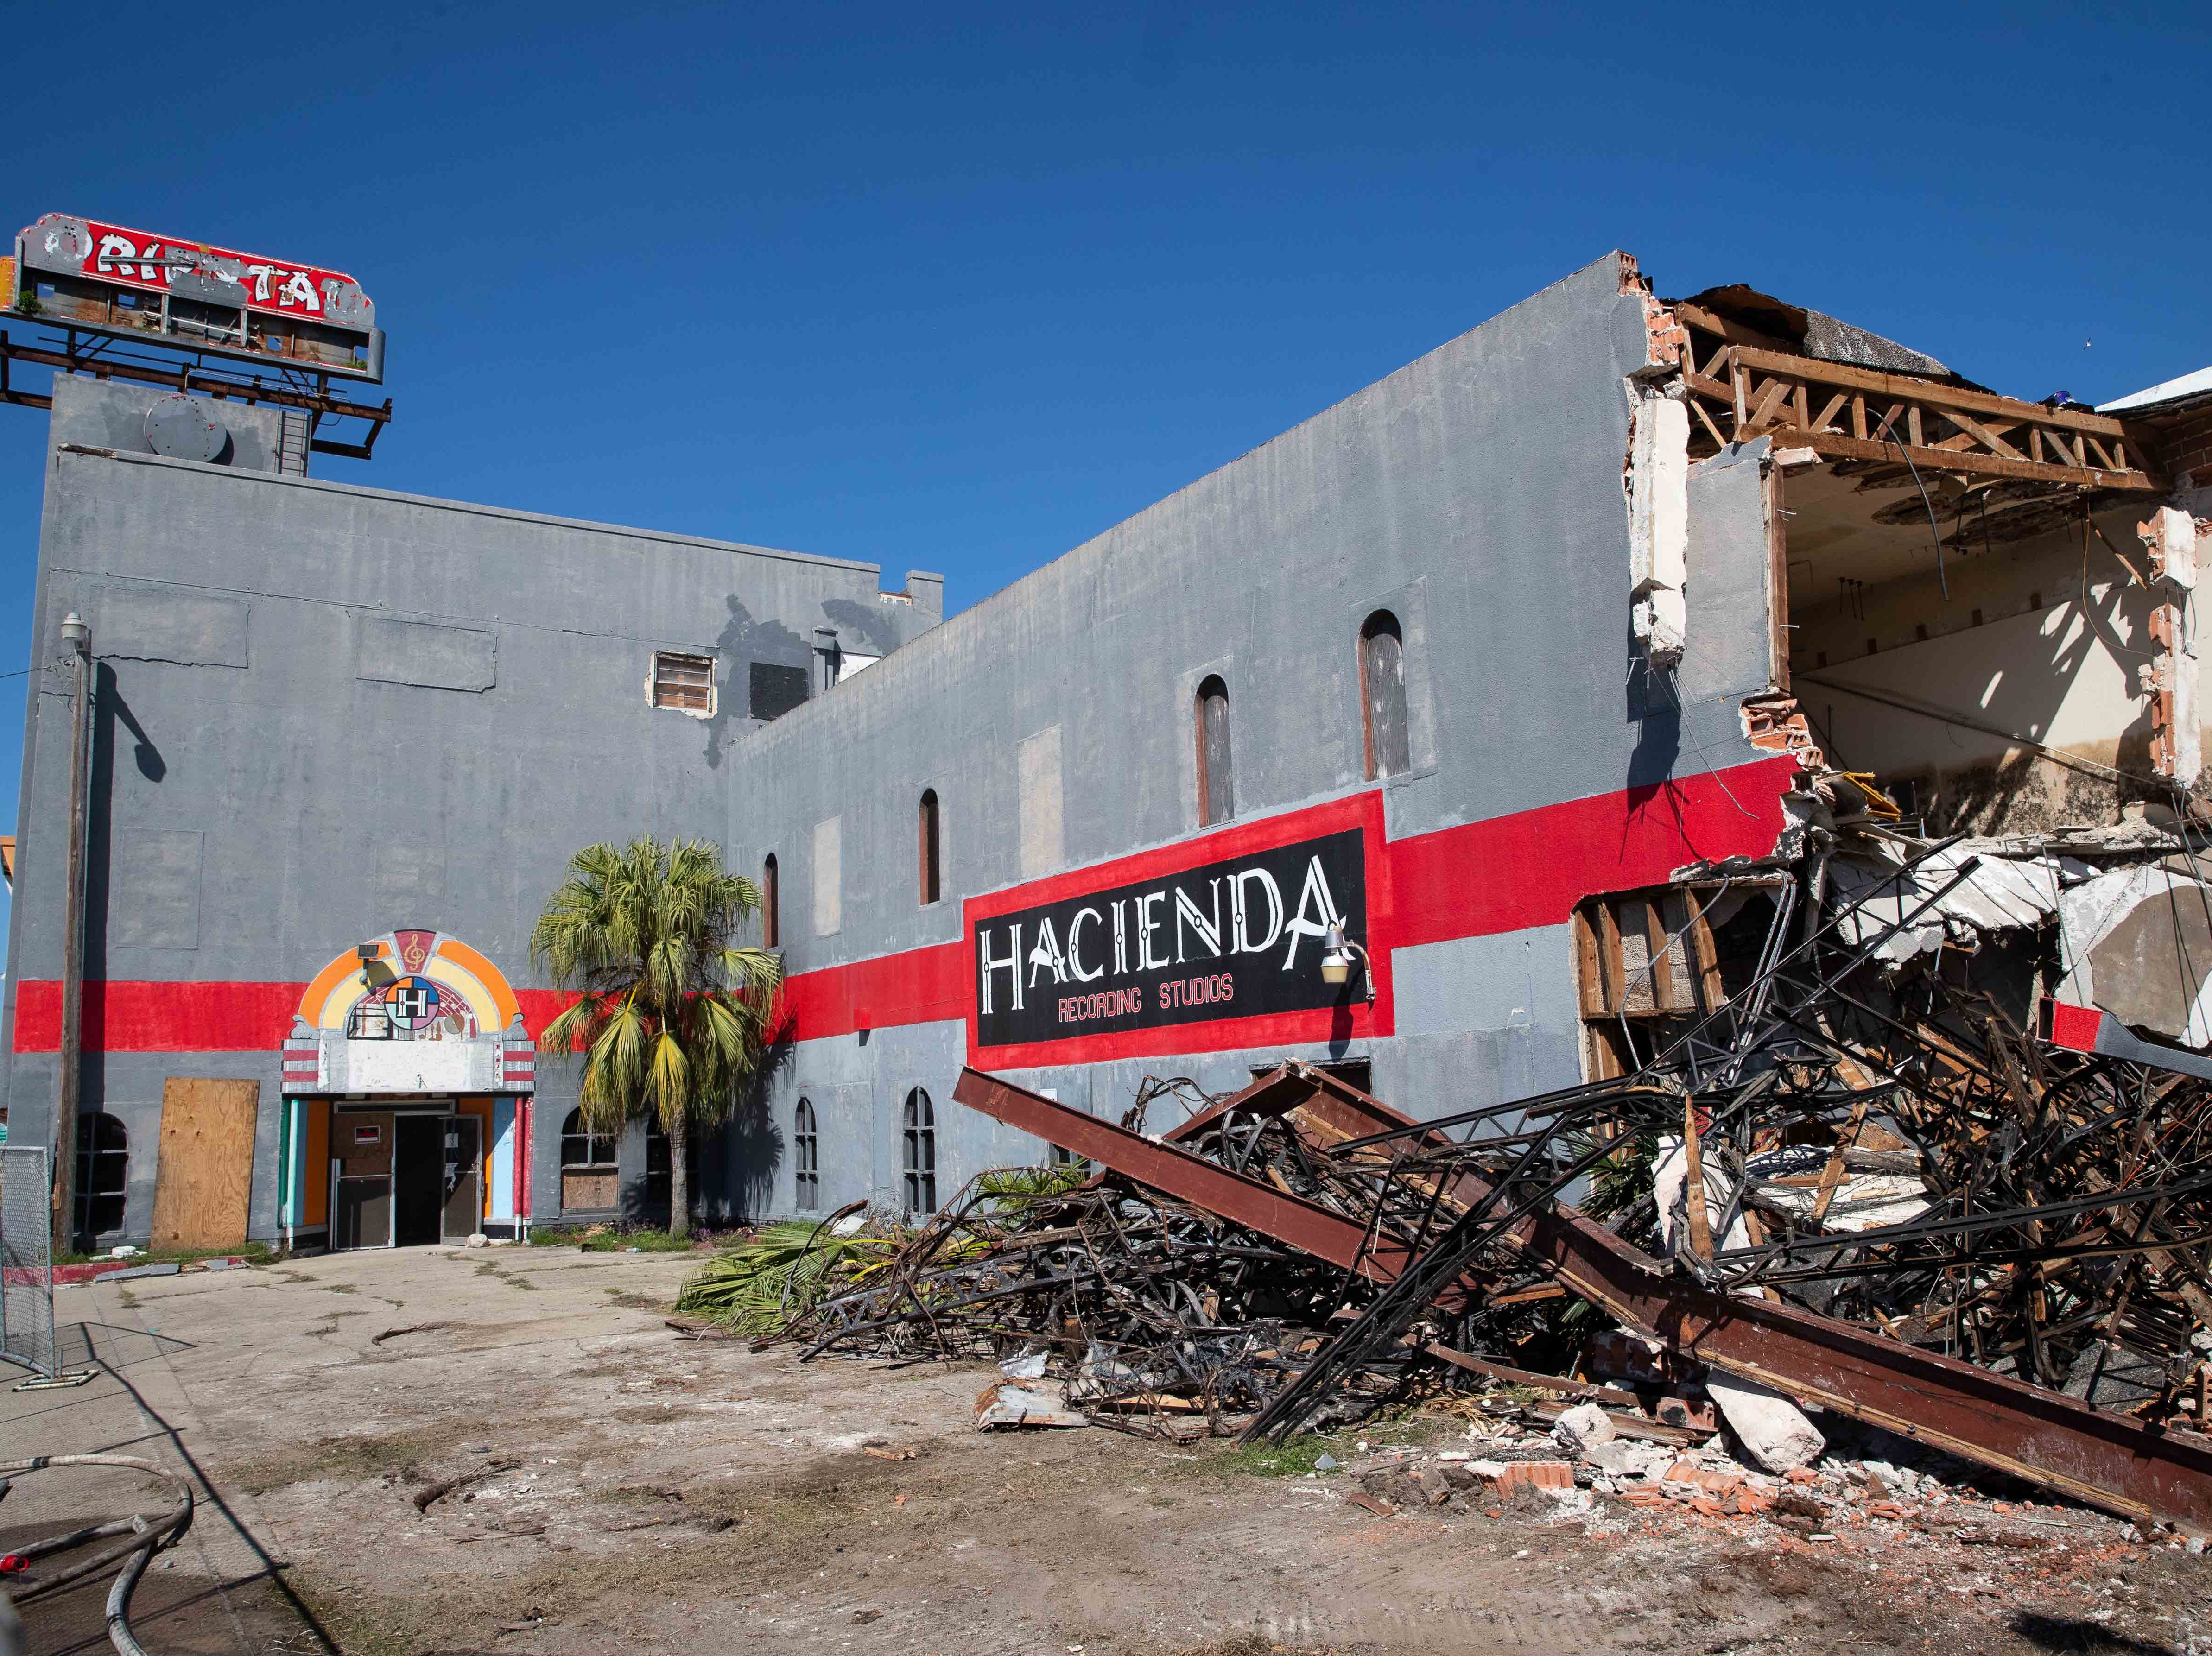 A demolition crew demolishes the old Hacienda Recording Studios on South Staples Street on Wednesday, Feb. 20, 2019.